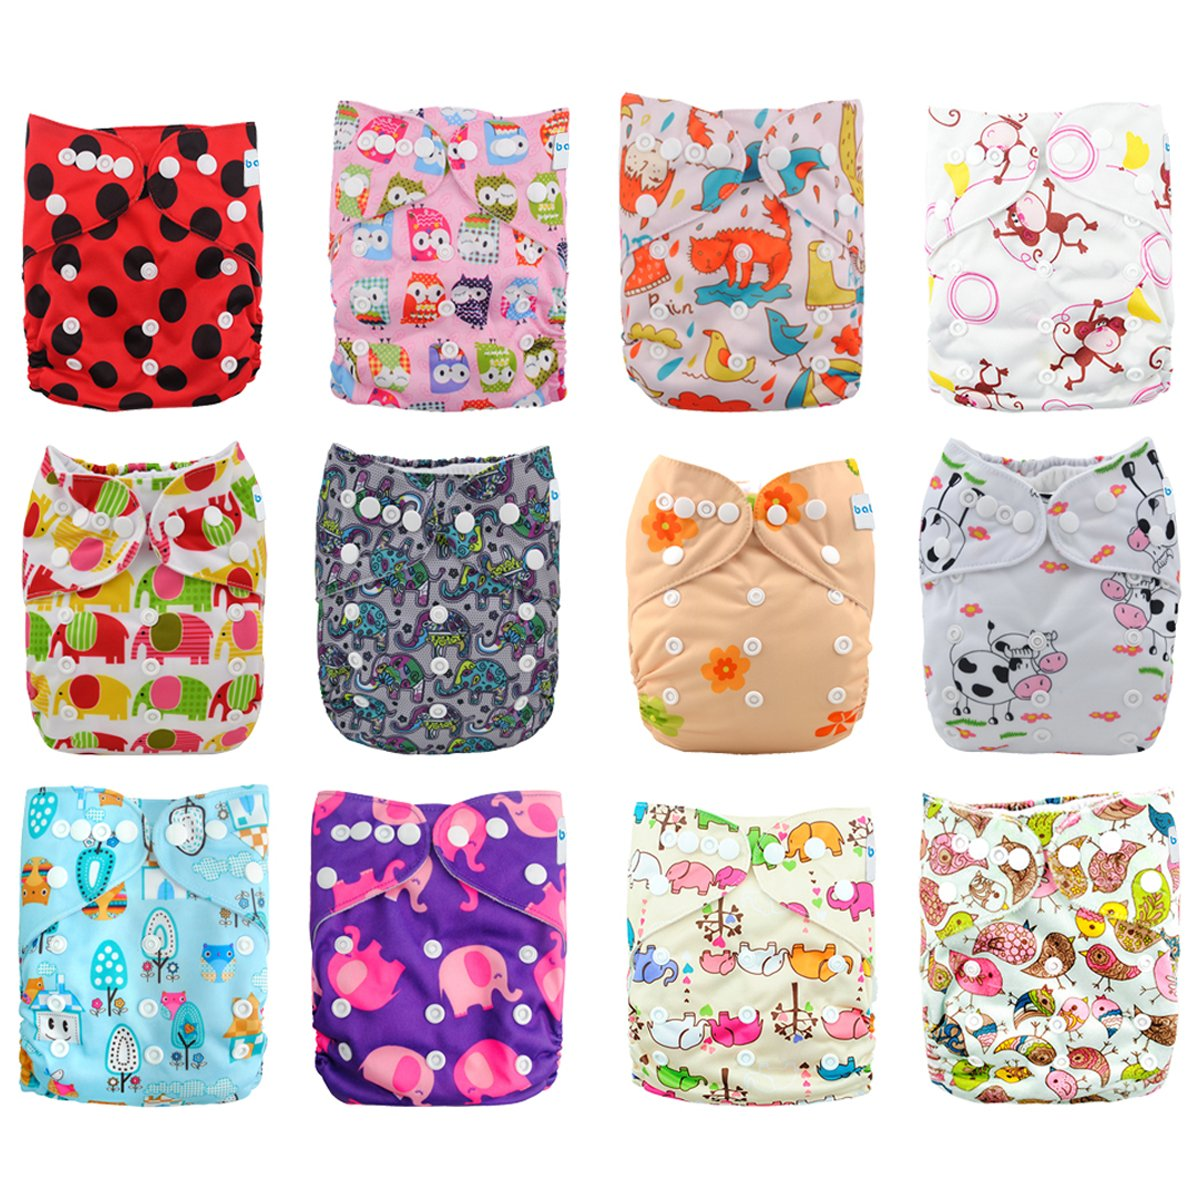 Babygoal Baby Cloth Diapers,One Size Adjustable Reusable Pocket Cloth Diaper 12pcs Diapers+12pcs Charcoal Bamboo Inserts+One Wet Bag+4pcs Baby Wipes 12fg42-3